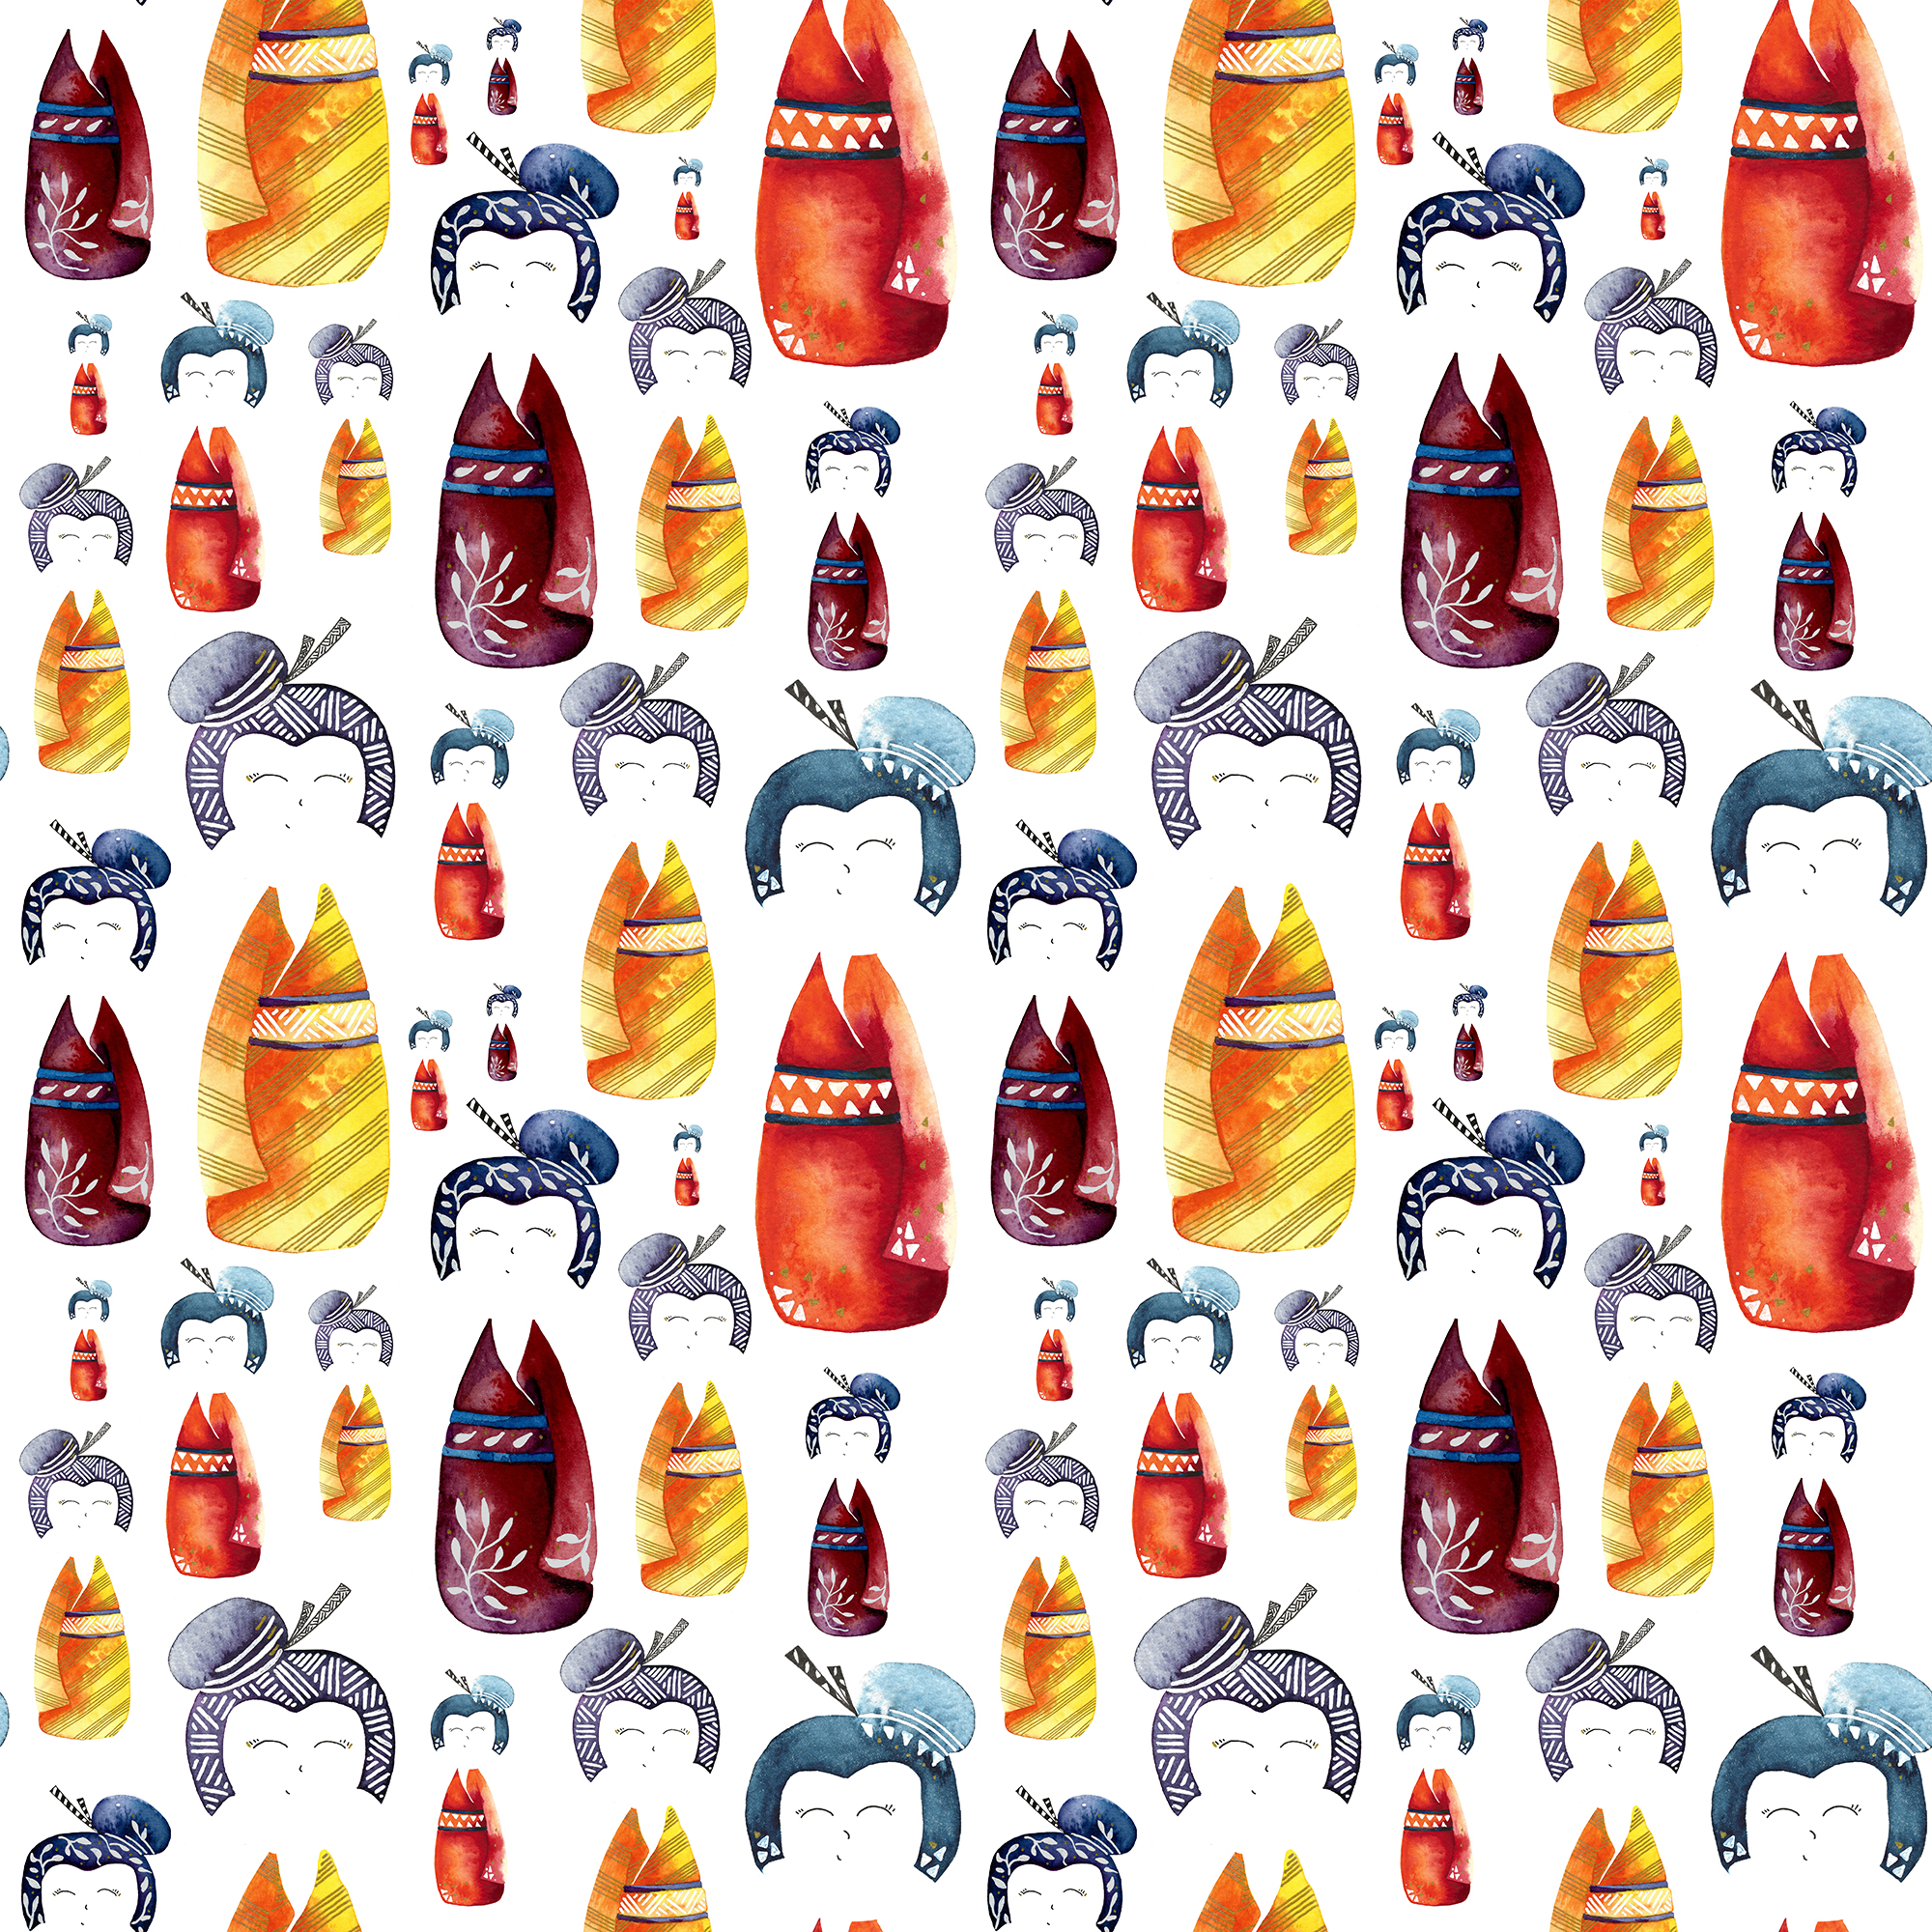 Colourful kokeshi dolls with white faces on a white background - repeat pattern